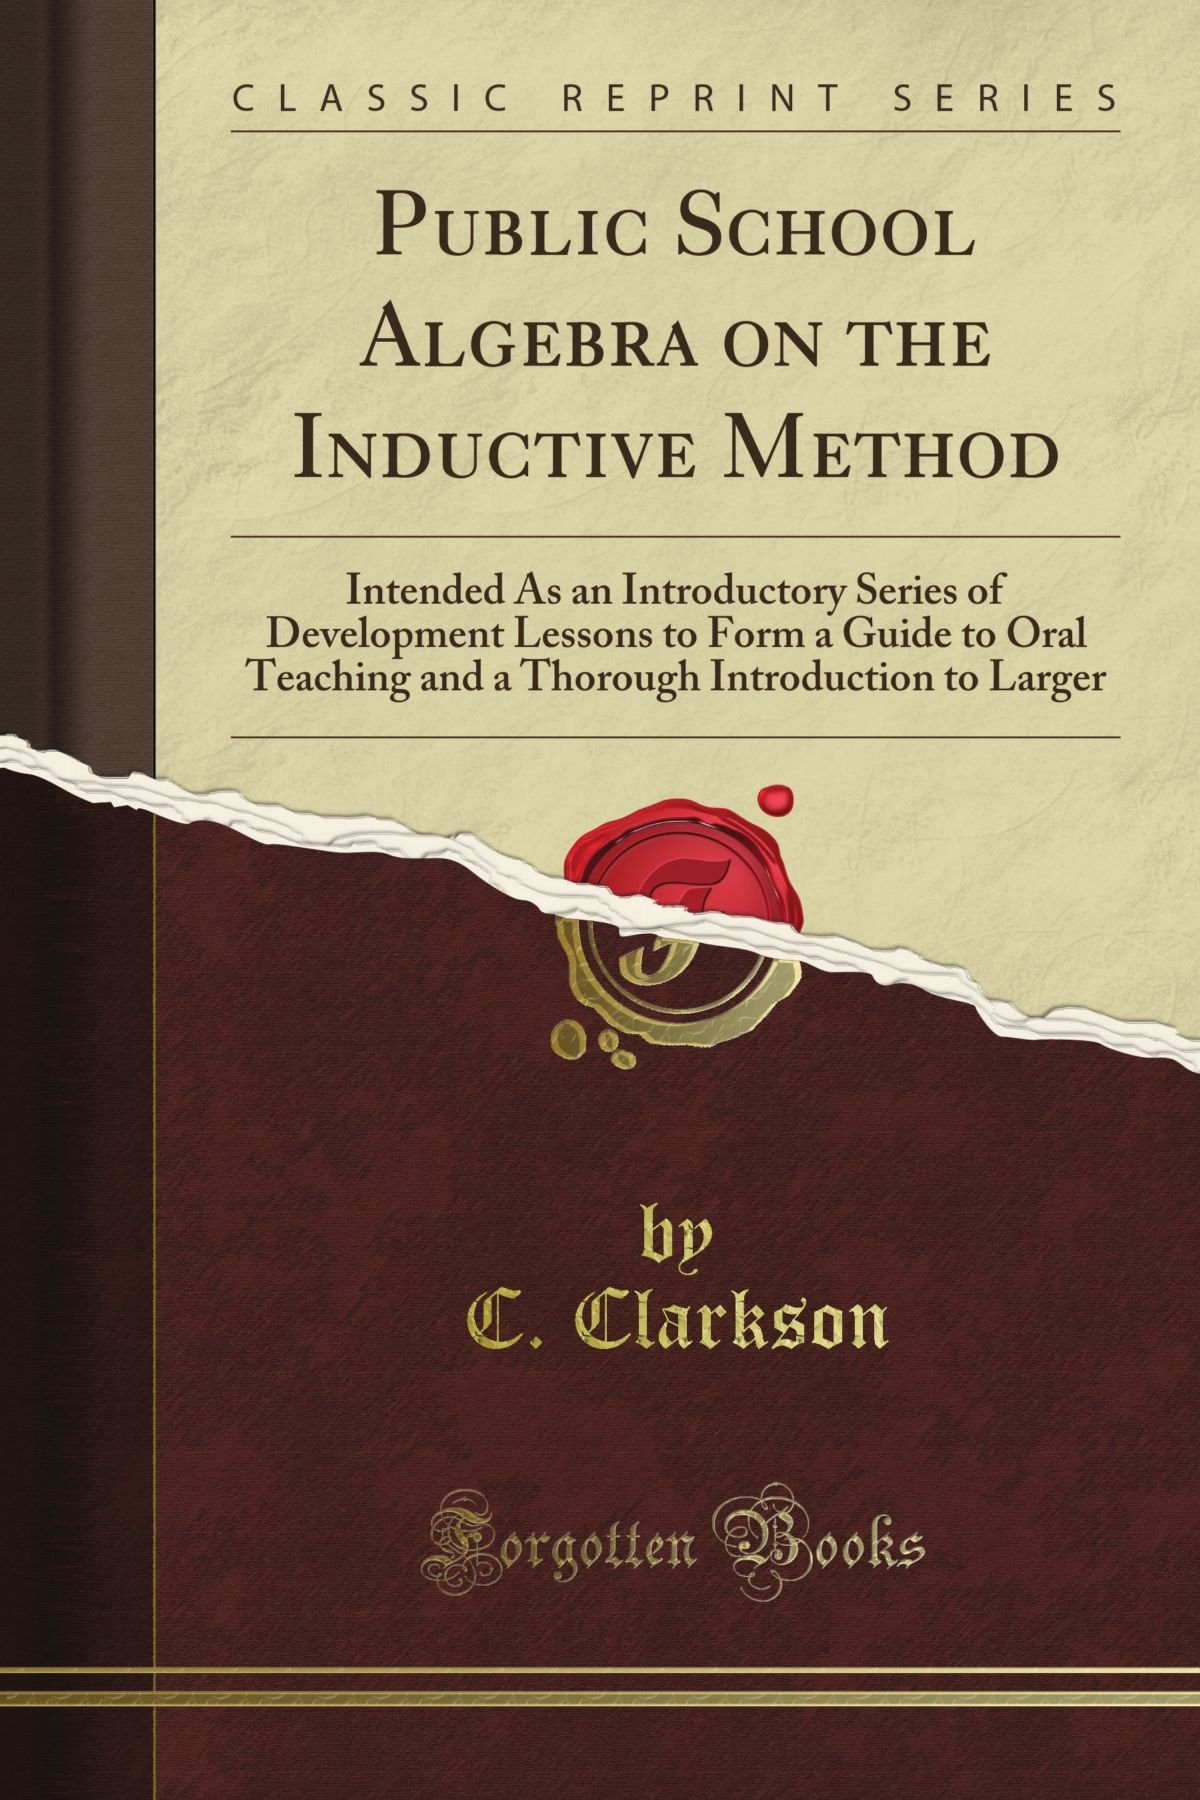 Download Public School Algebra on the Inductive Method: Intended As an Introductory Series of Development Lessons to Form a Guide to Oral Teaching and a Thorough Introduction to Larger (Classic Reprint) pdf